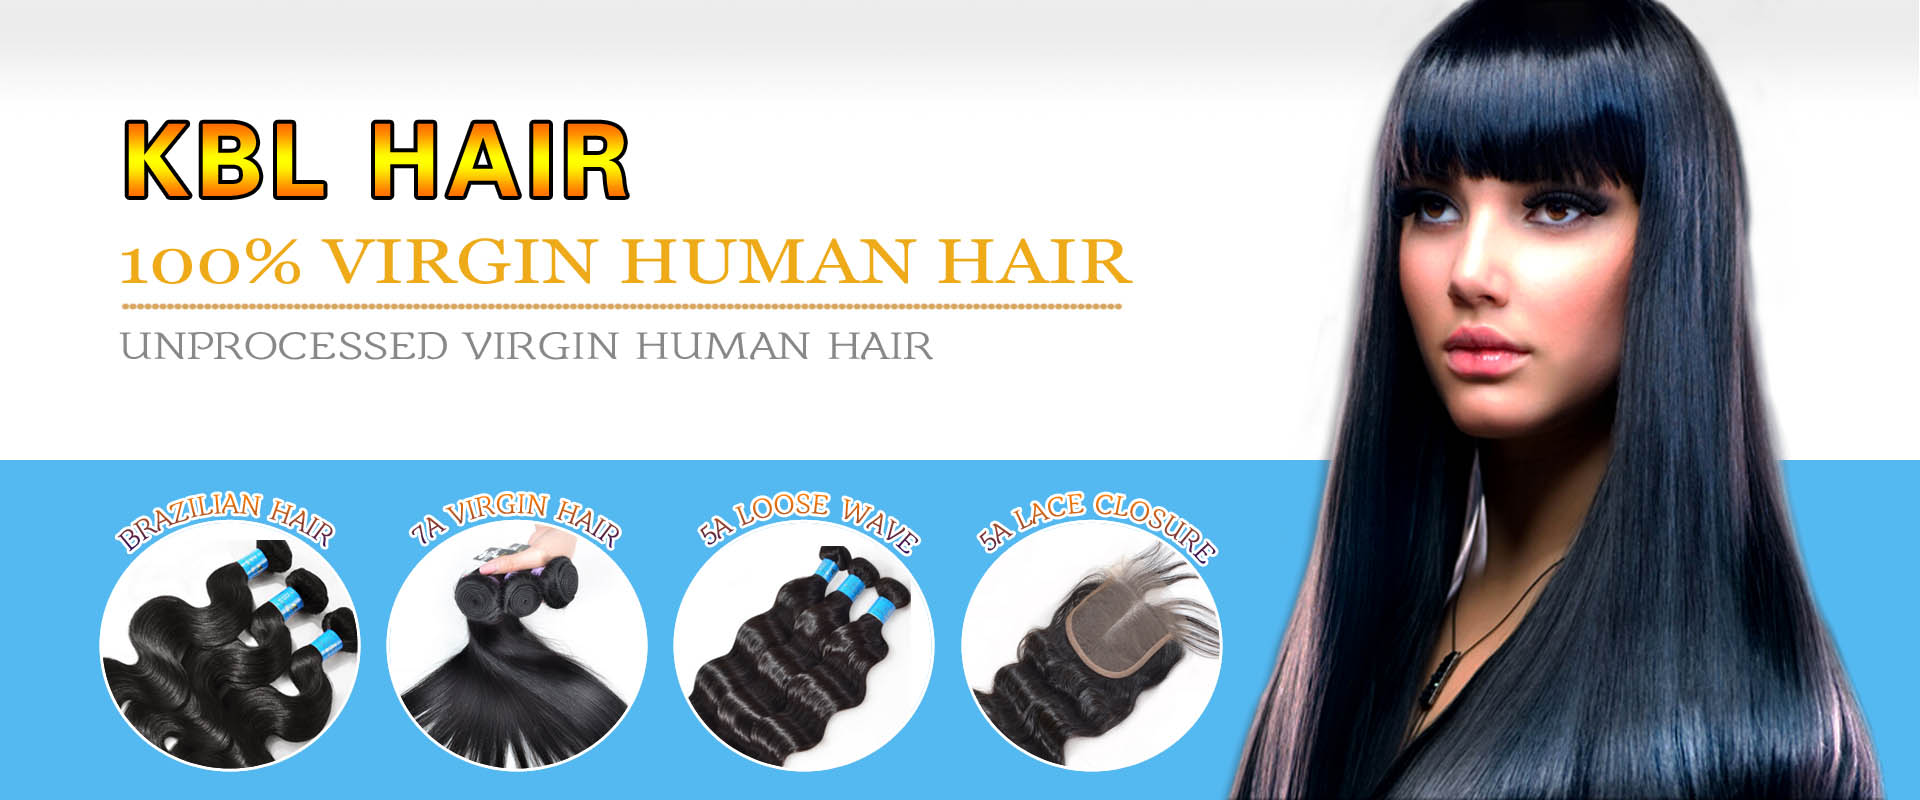 wholesale virgin hair,wholesale hair